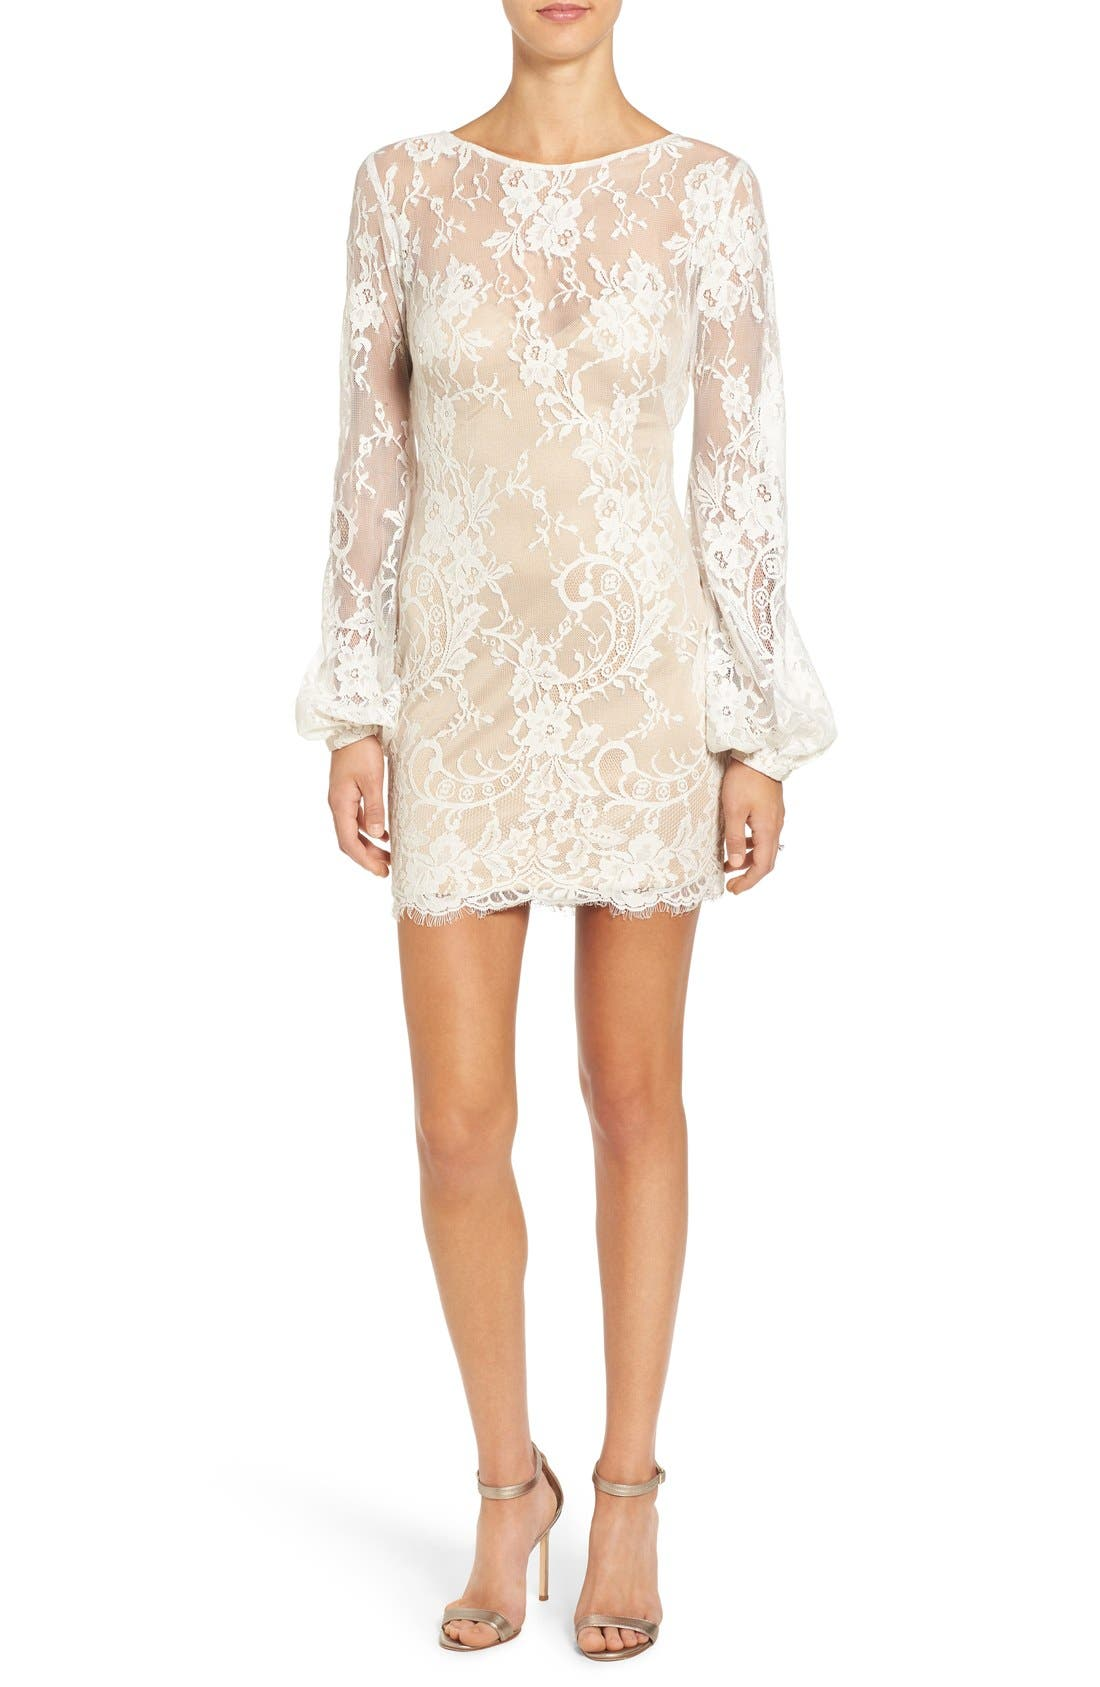 Alternate Image 1 Selected - Katie May 'Britney' Long Sleeve Open Back Lace Sheath Dress